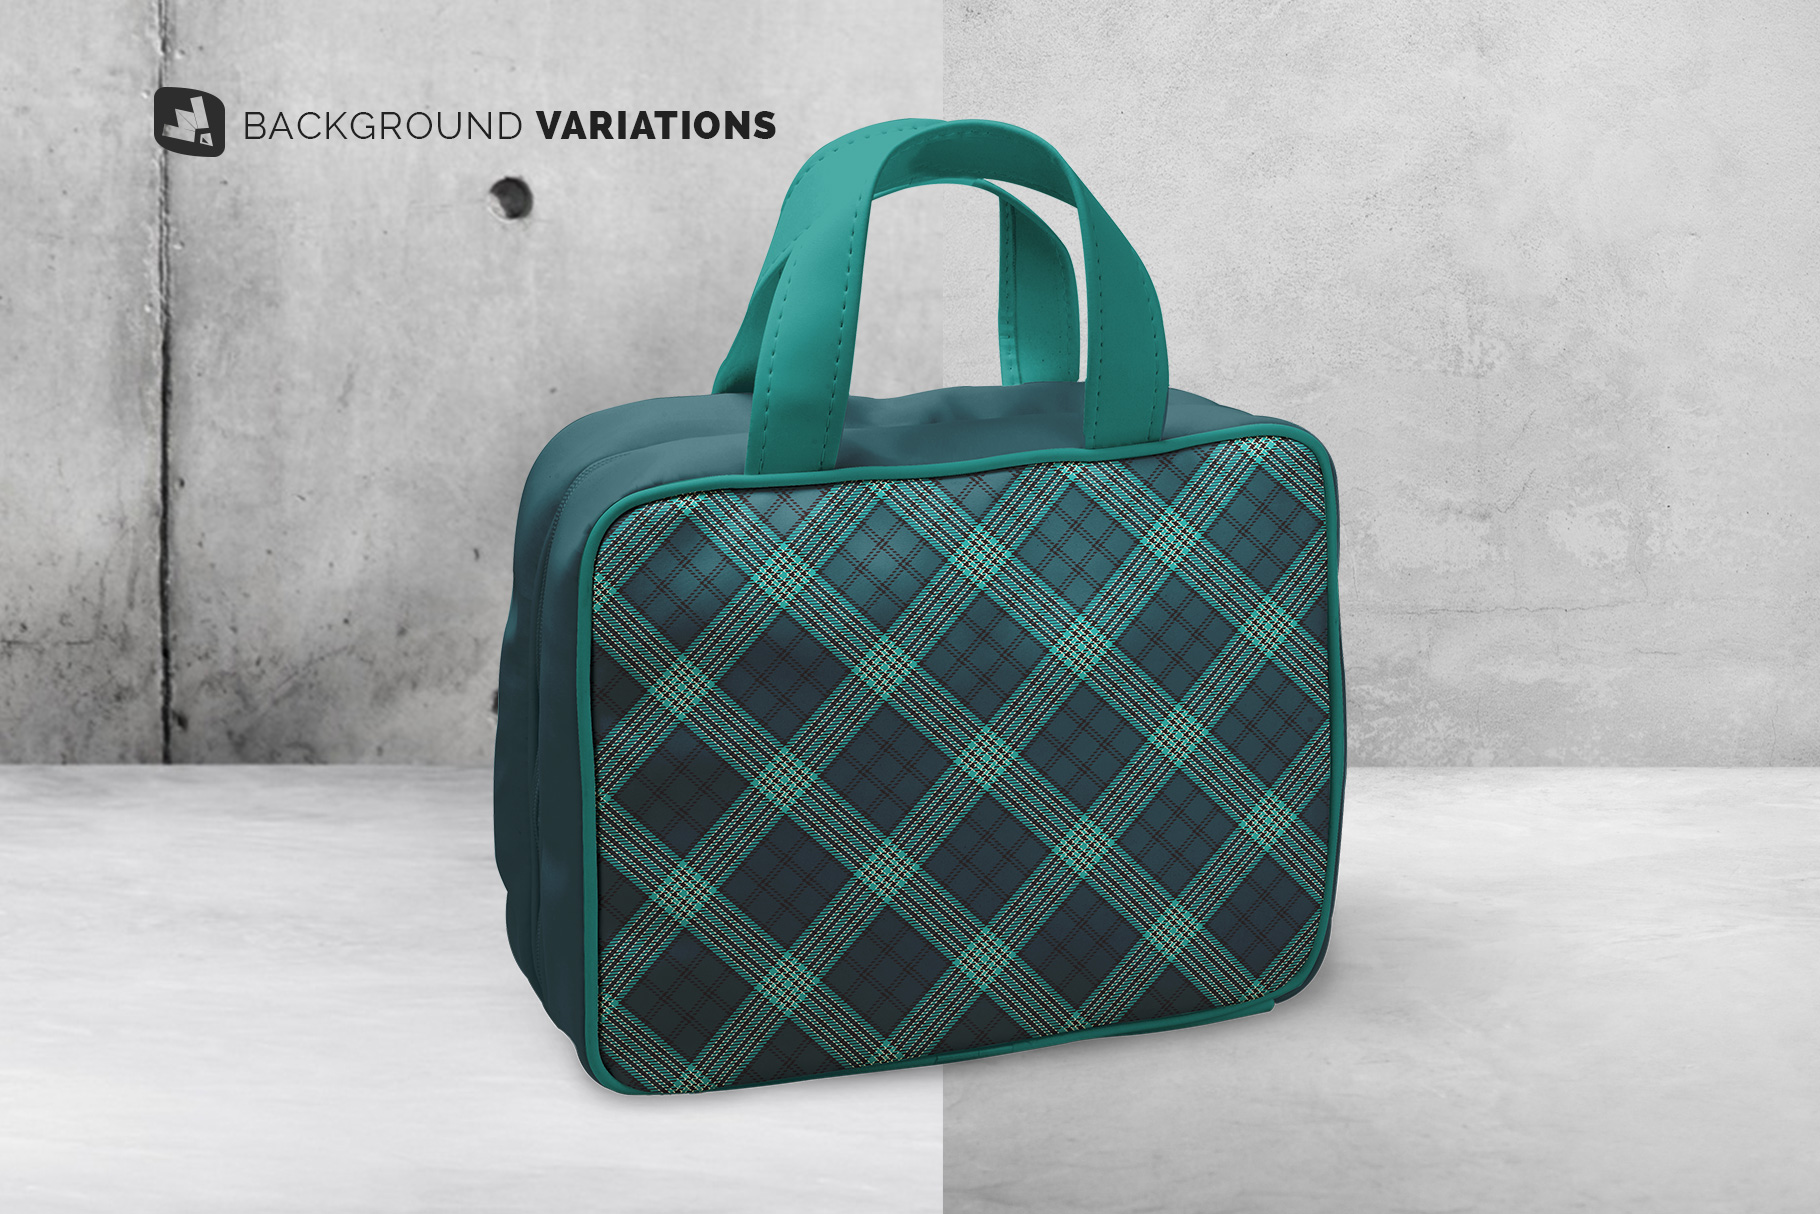 background options of the faux leather messenger bag mockup